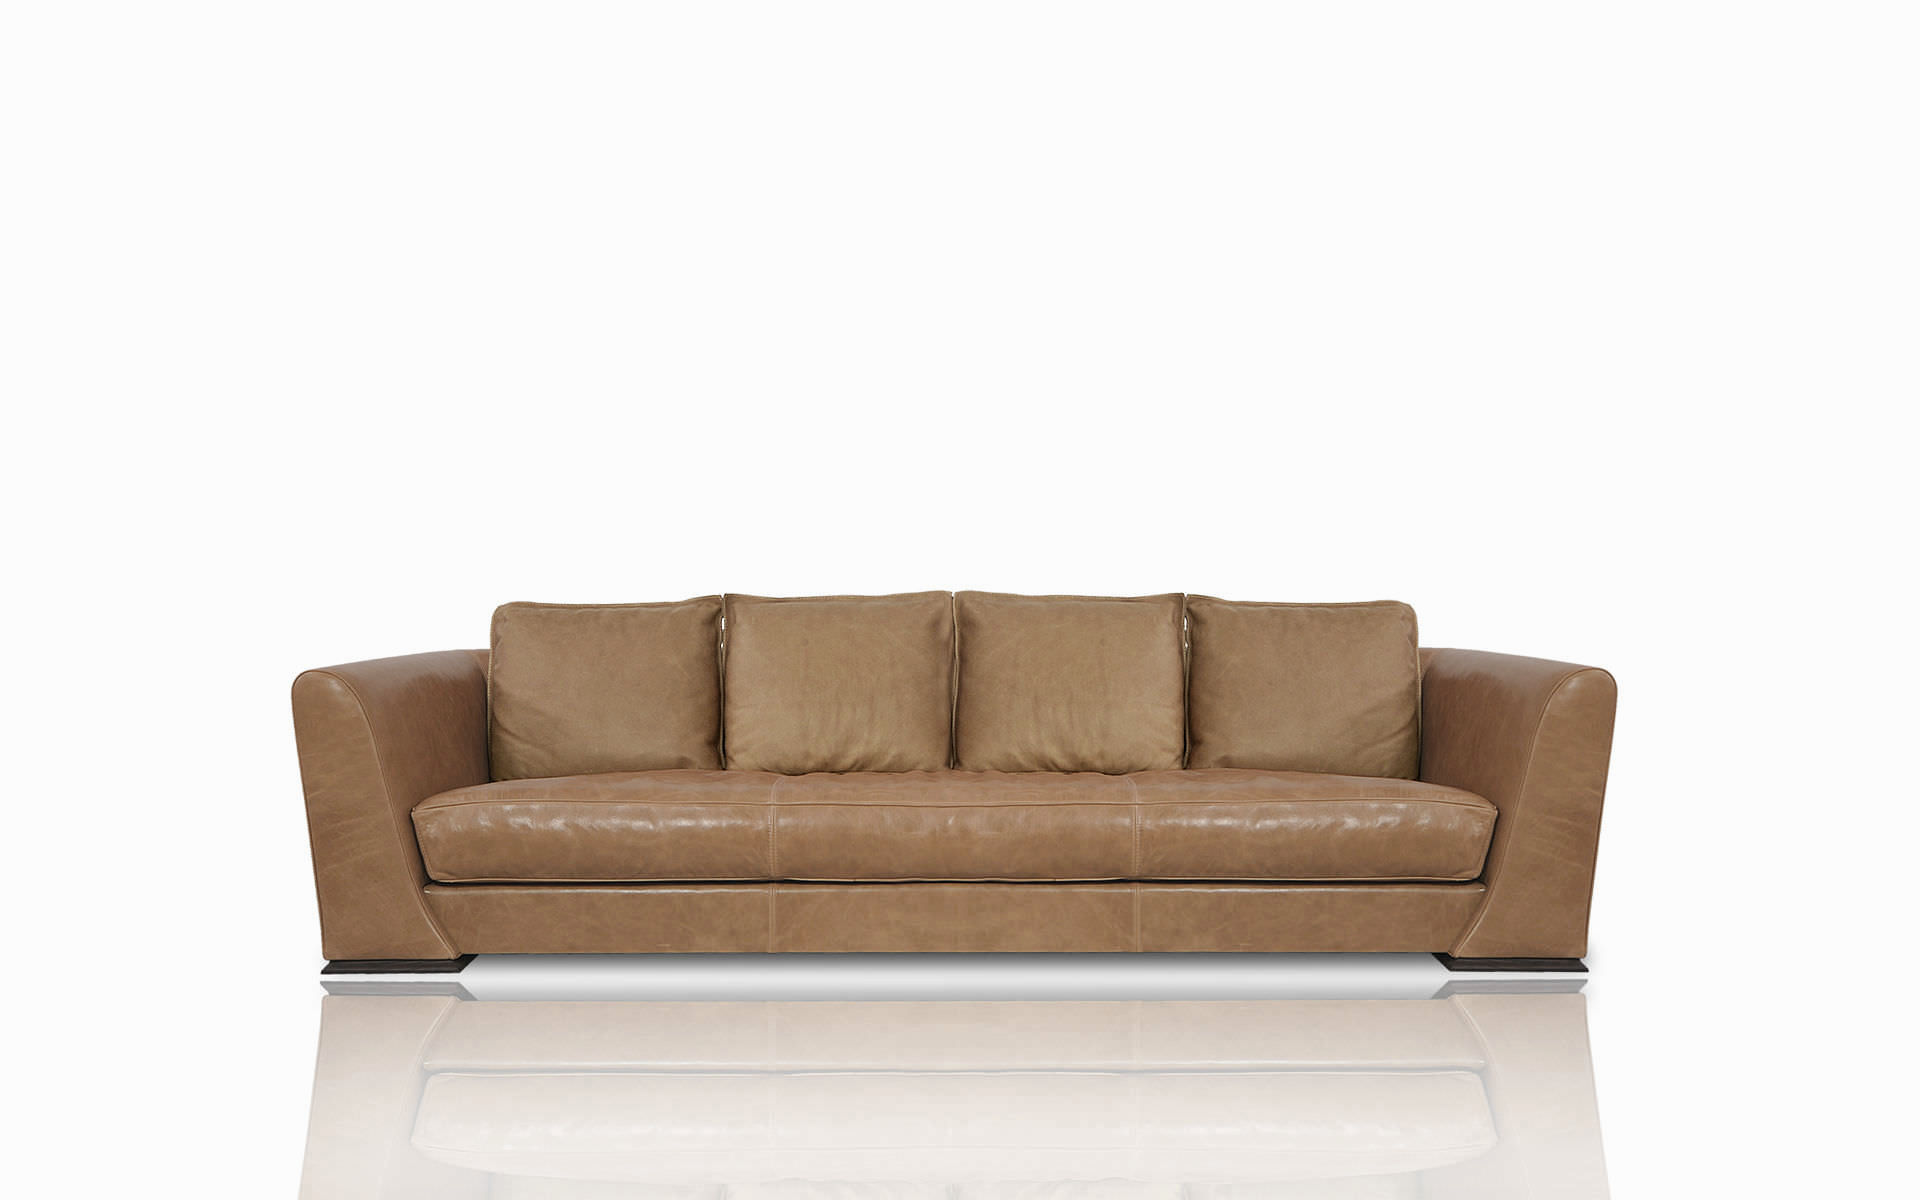 awesome leather sofa white collection-Fantastic Leather sofa White Concept